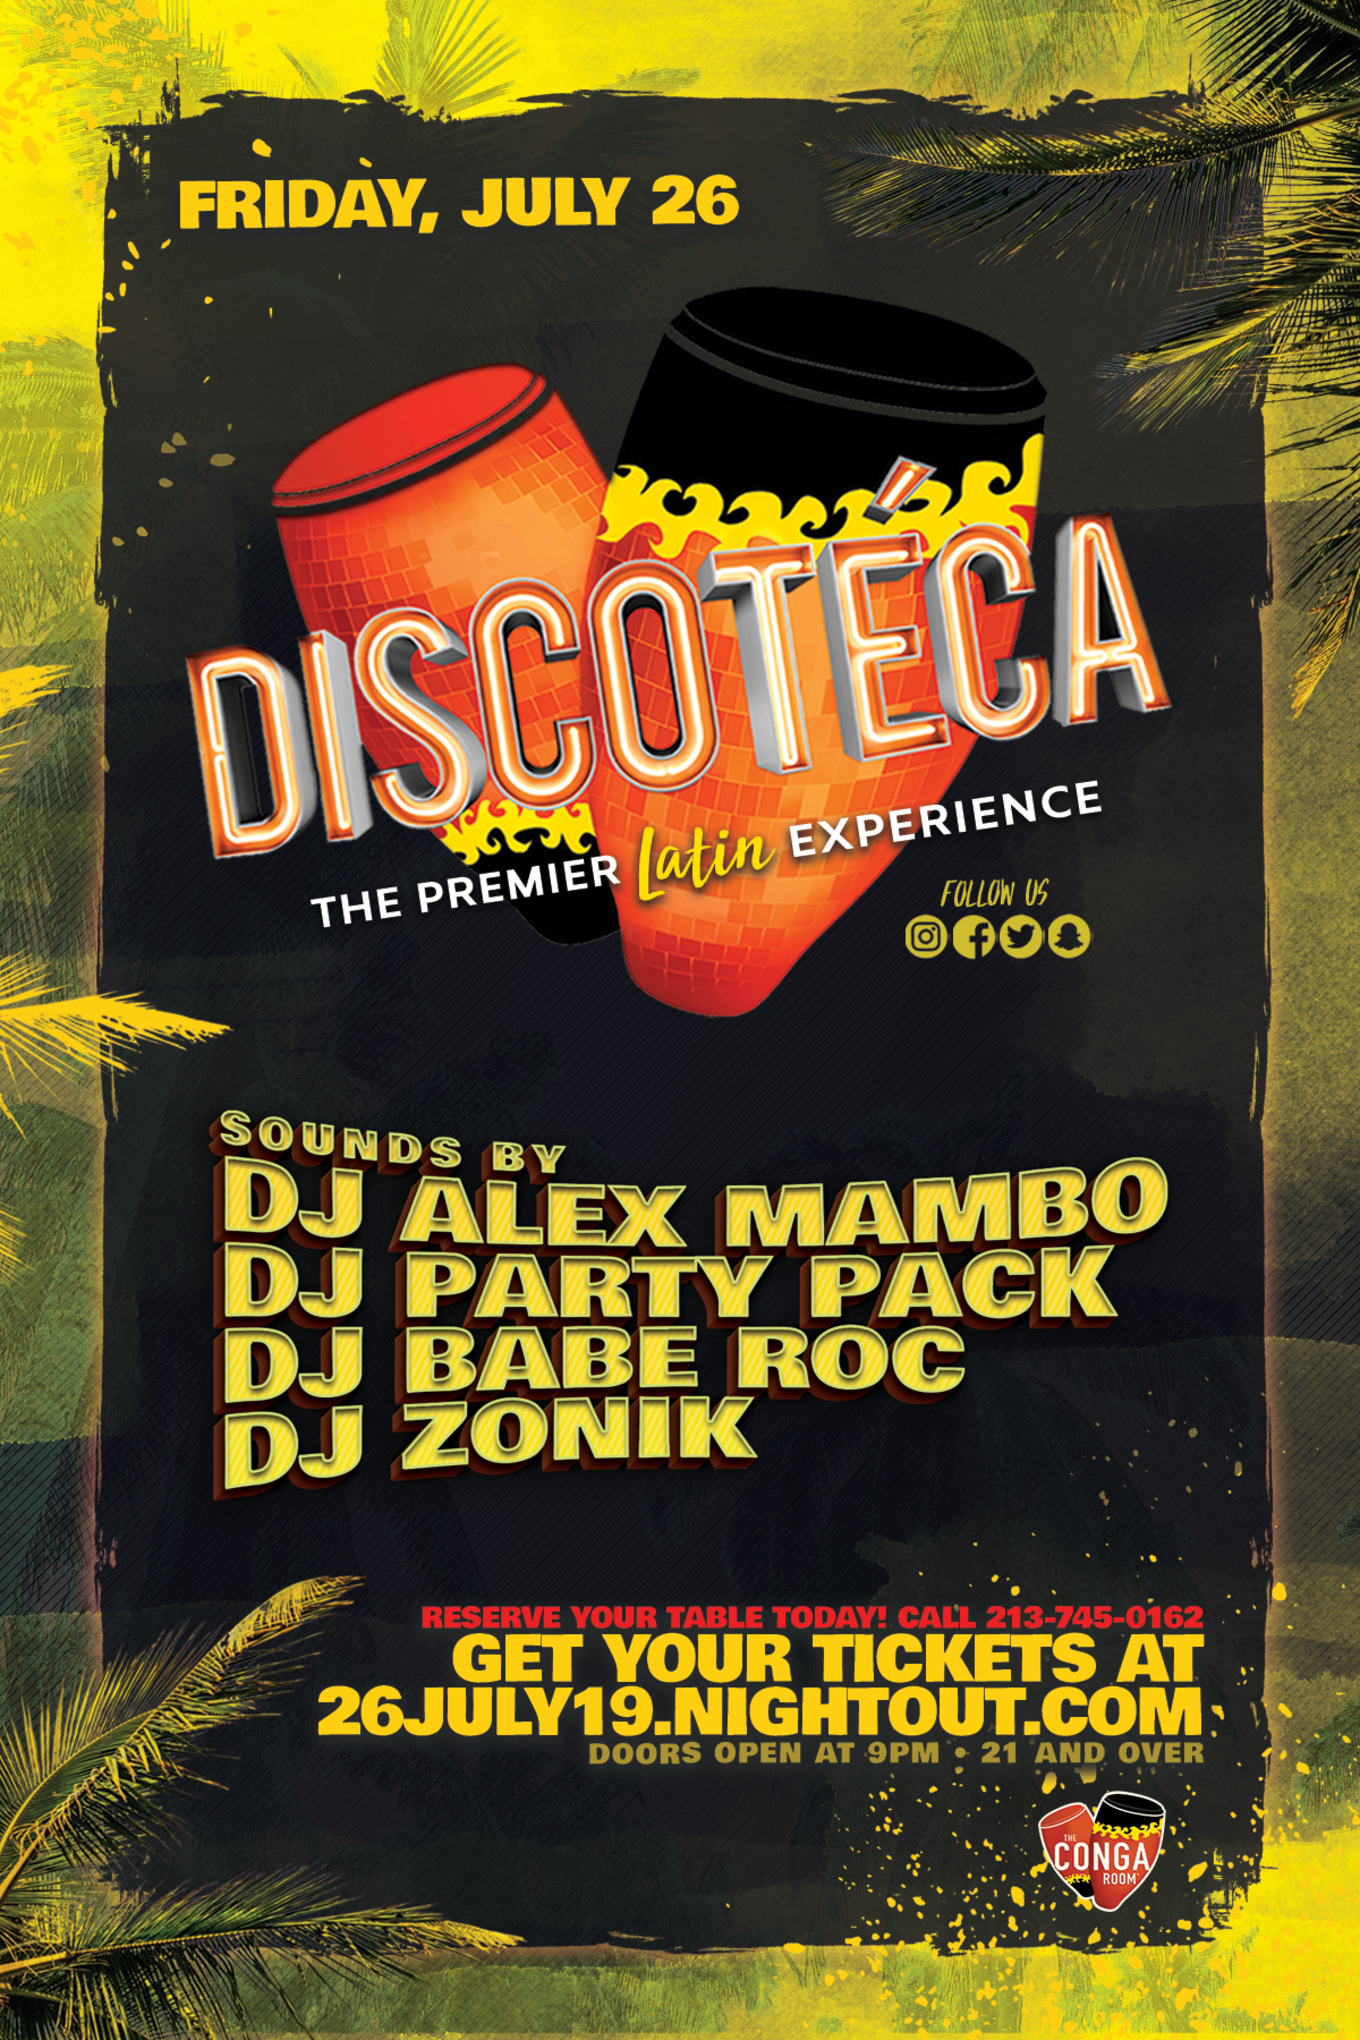 Conga Room presents Discoteca - Tickets - Conga Room , Los Angeles